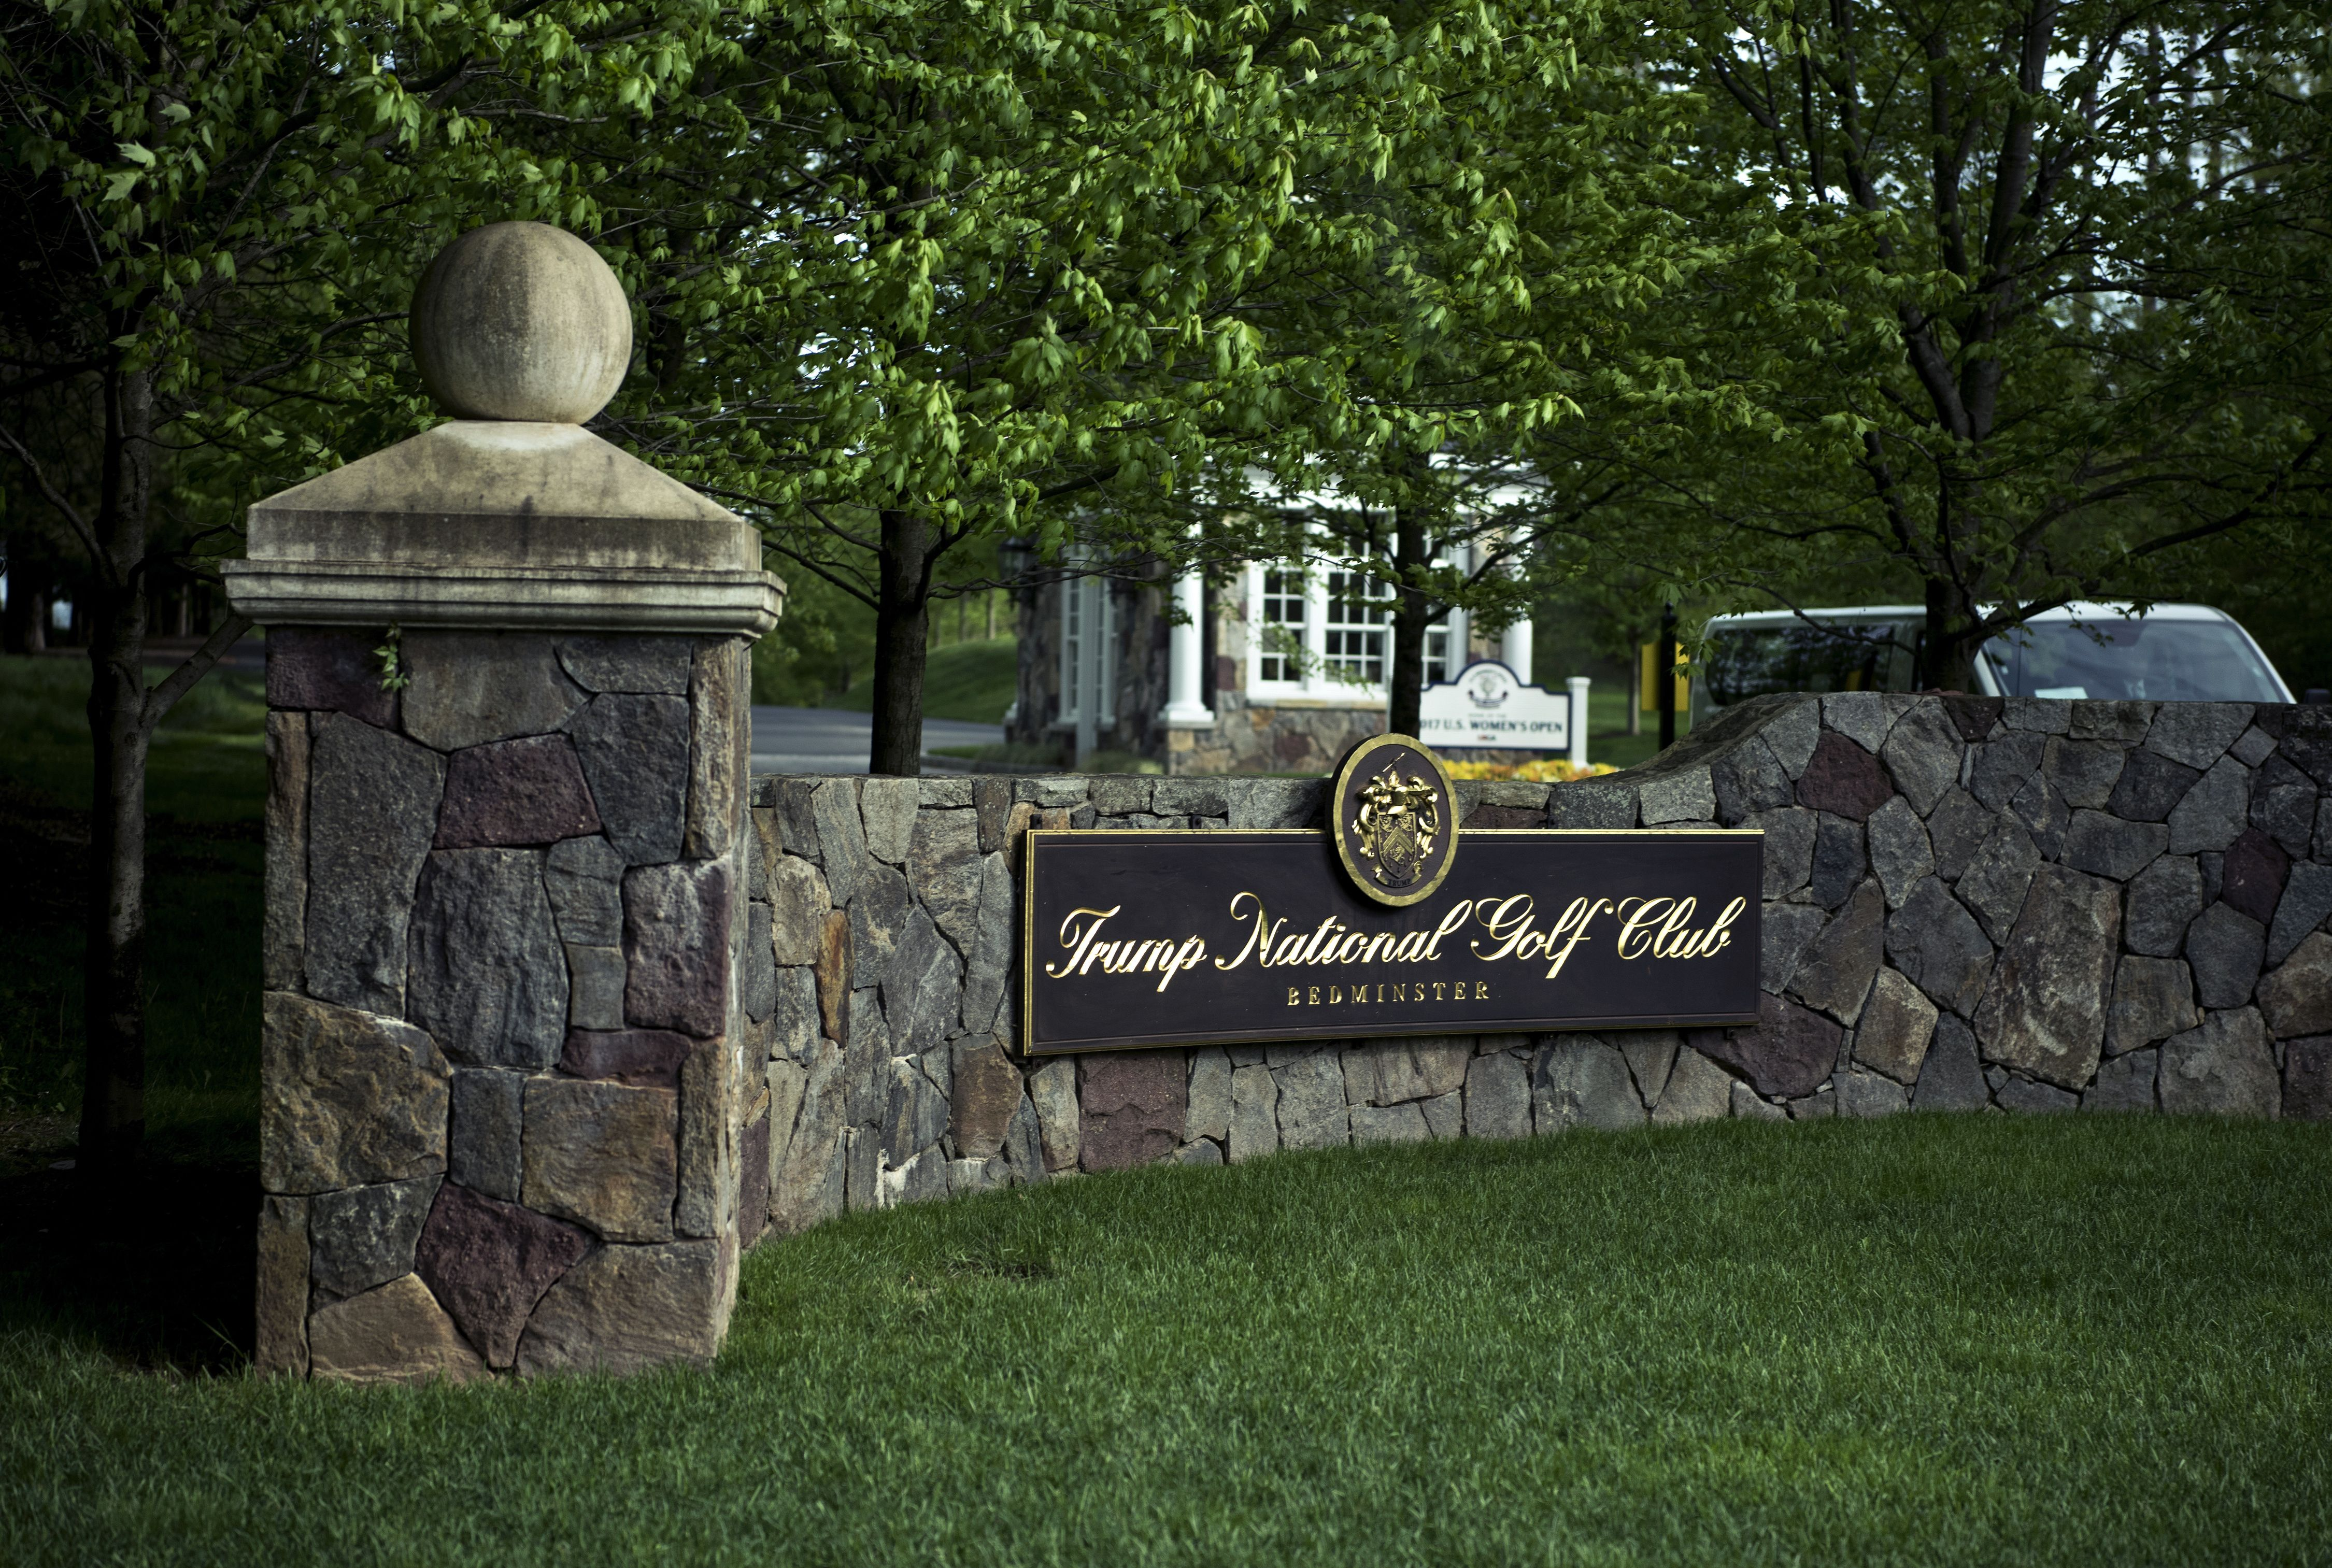 Trump National Golf Club in Bedminster